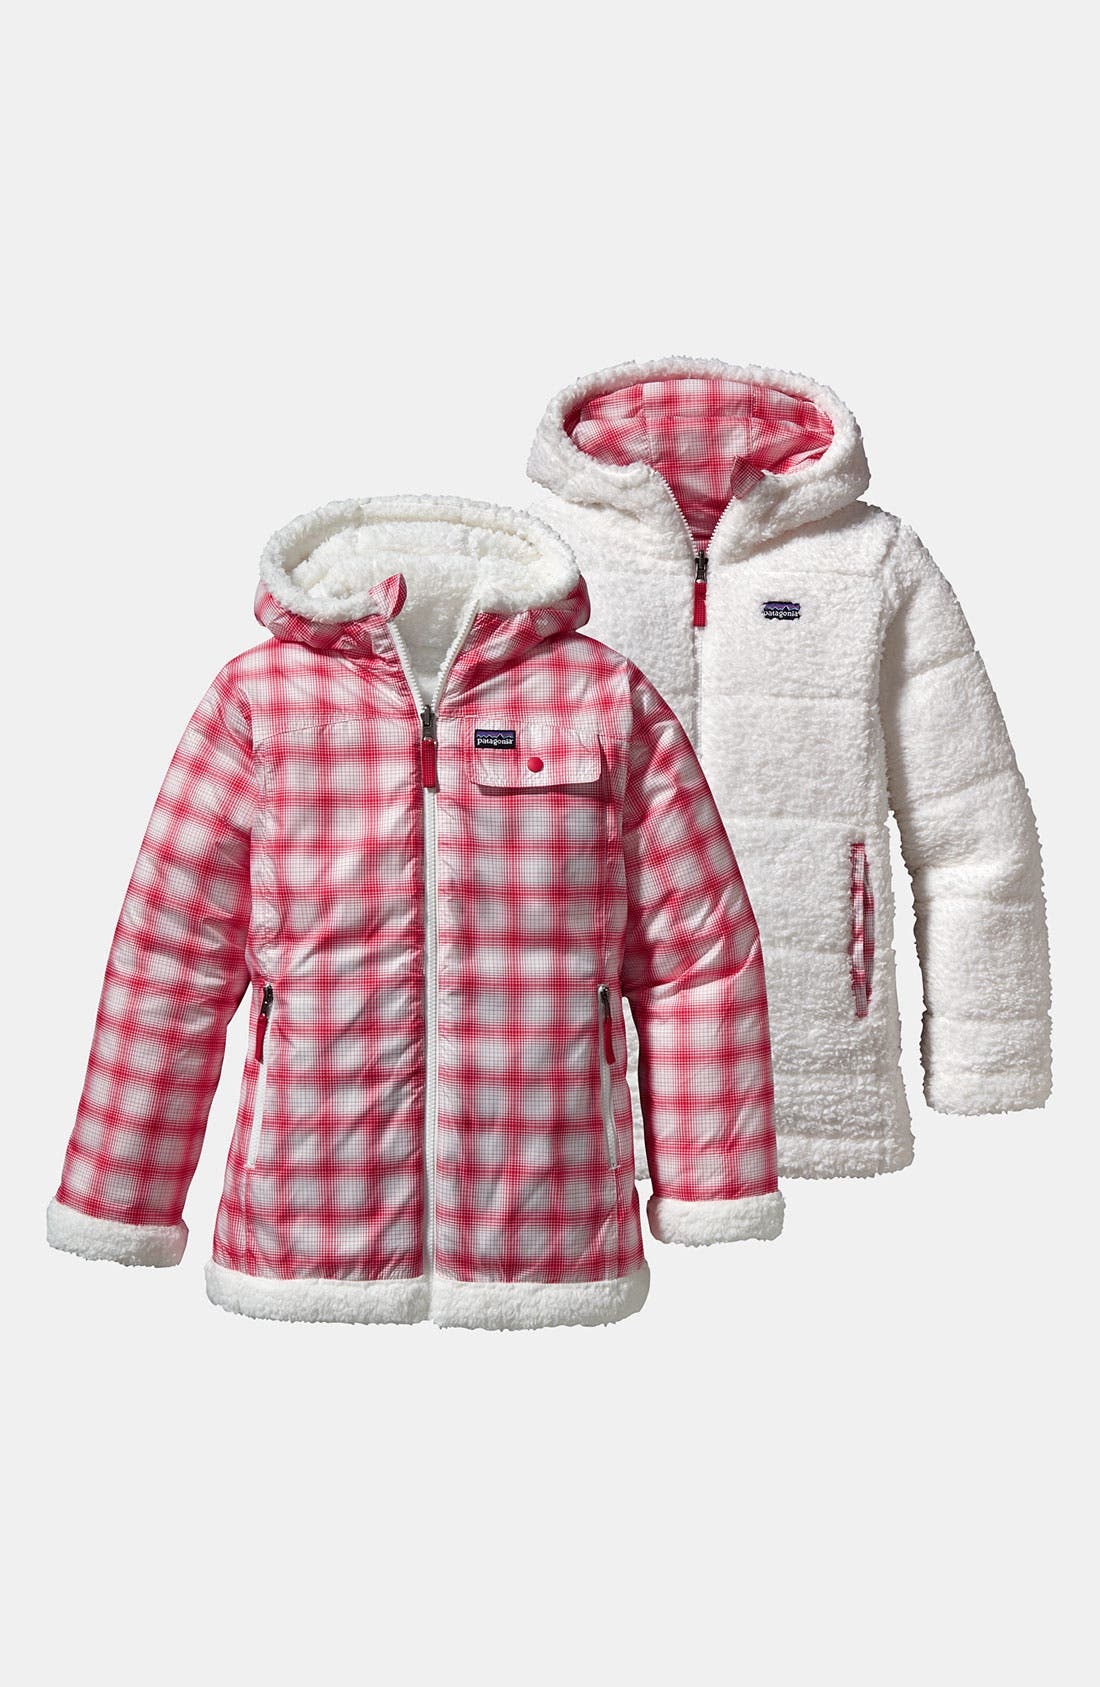 Main Image - Patagonia 'Dynamite Duo' Jacket (Little Girls & Big Girls)